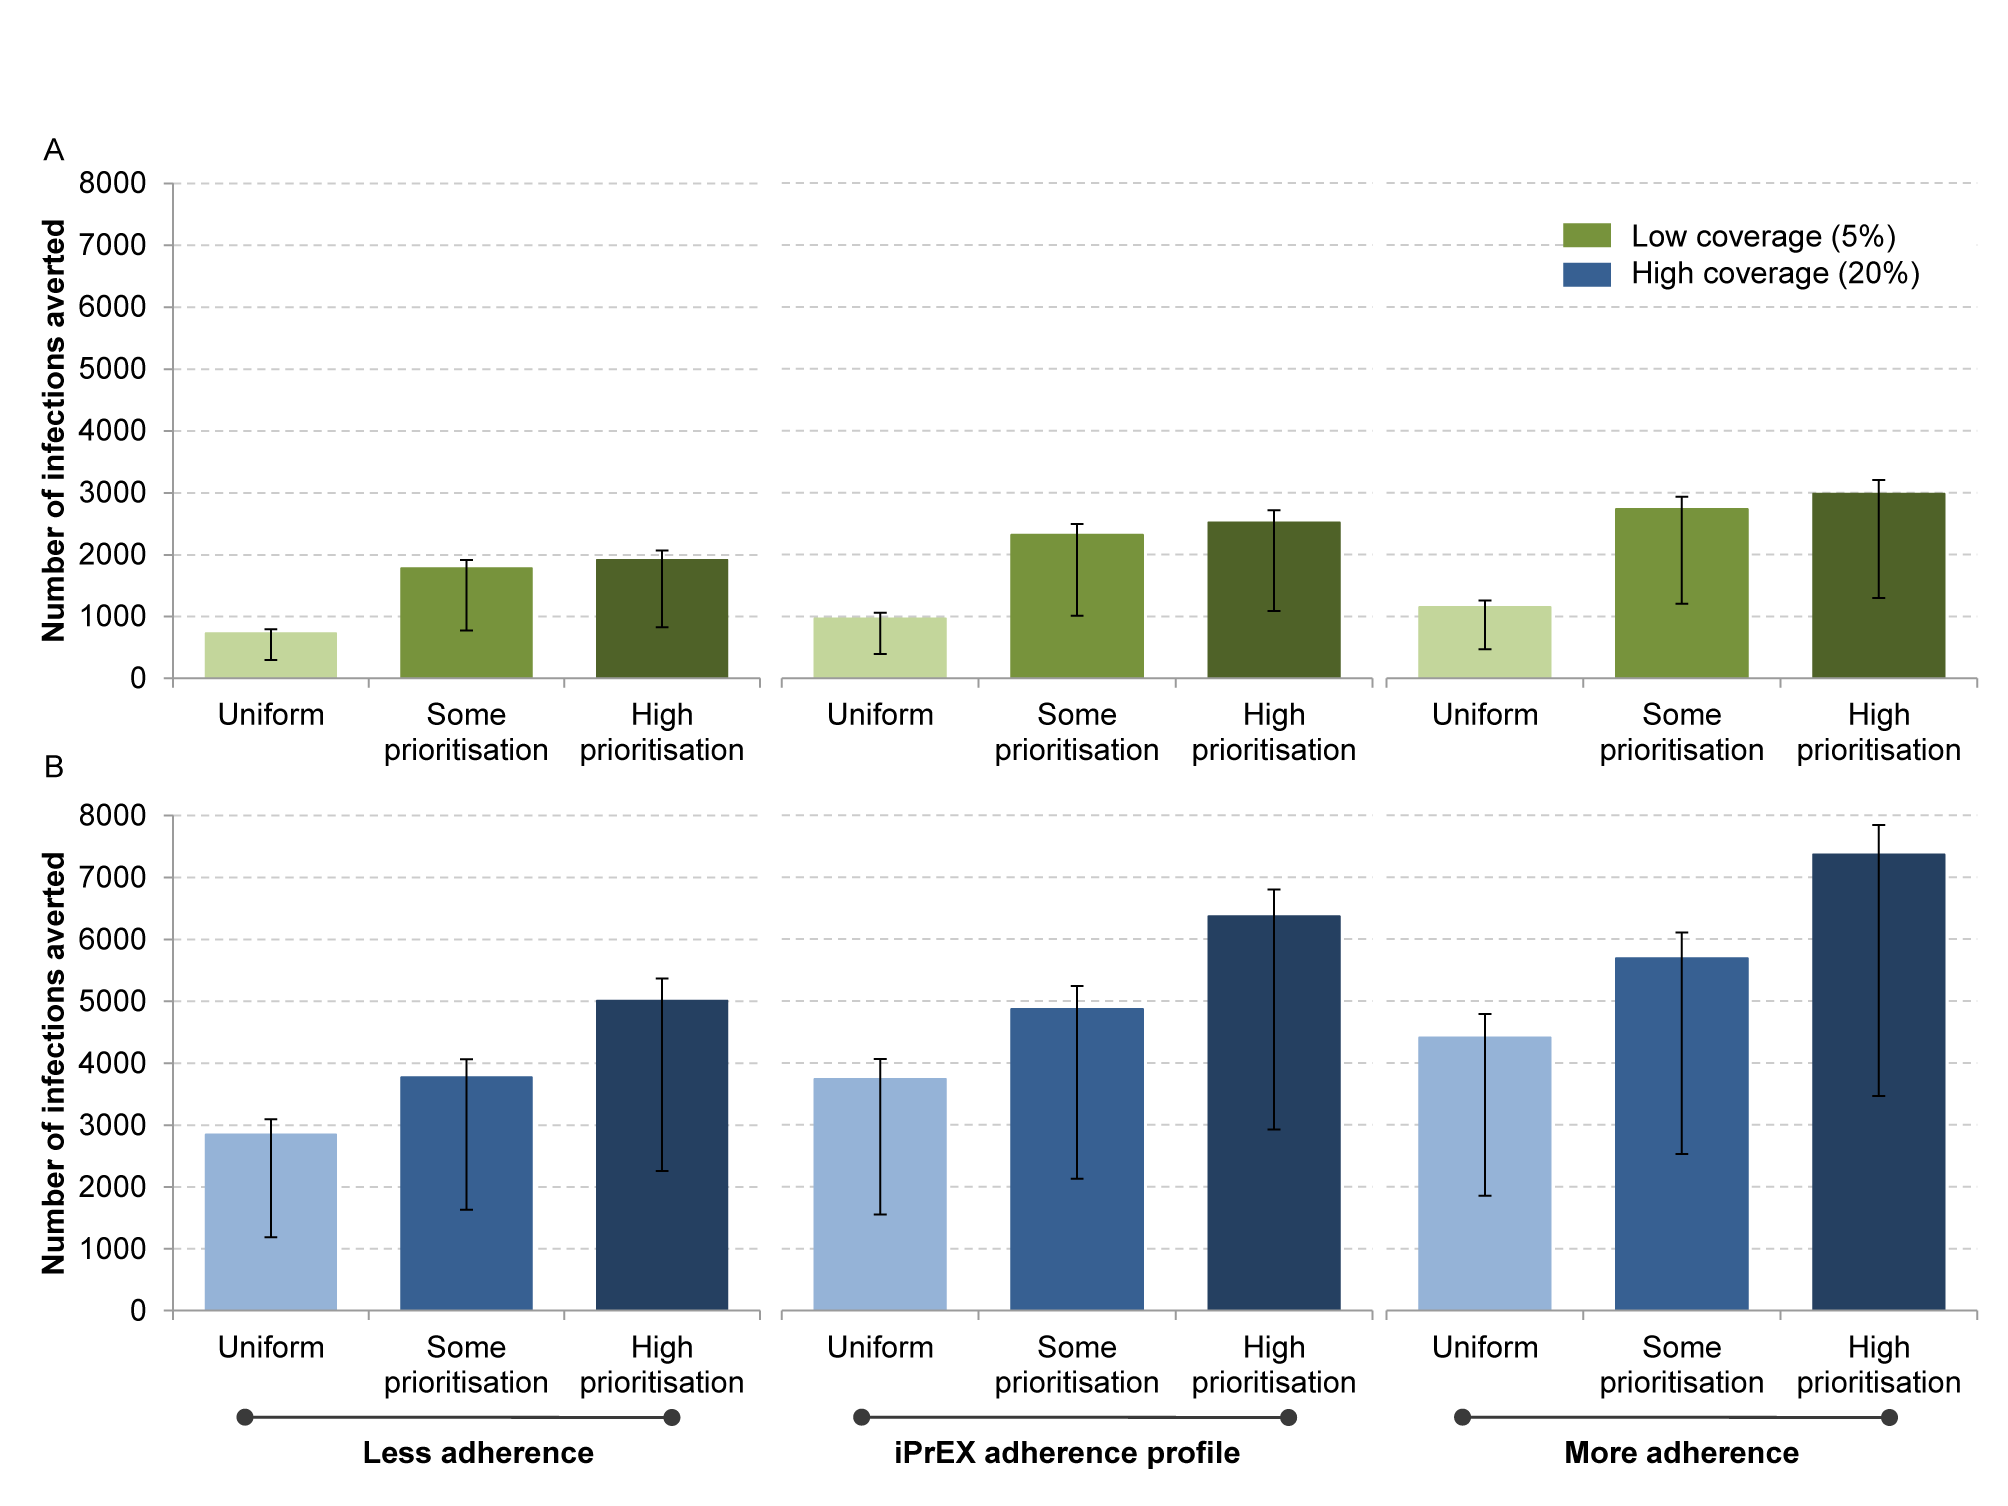 Estimated impact of PrEP with respect to coverage, adherence, and prioritisation of key populations.